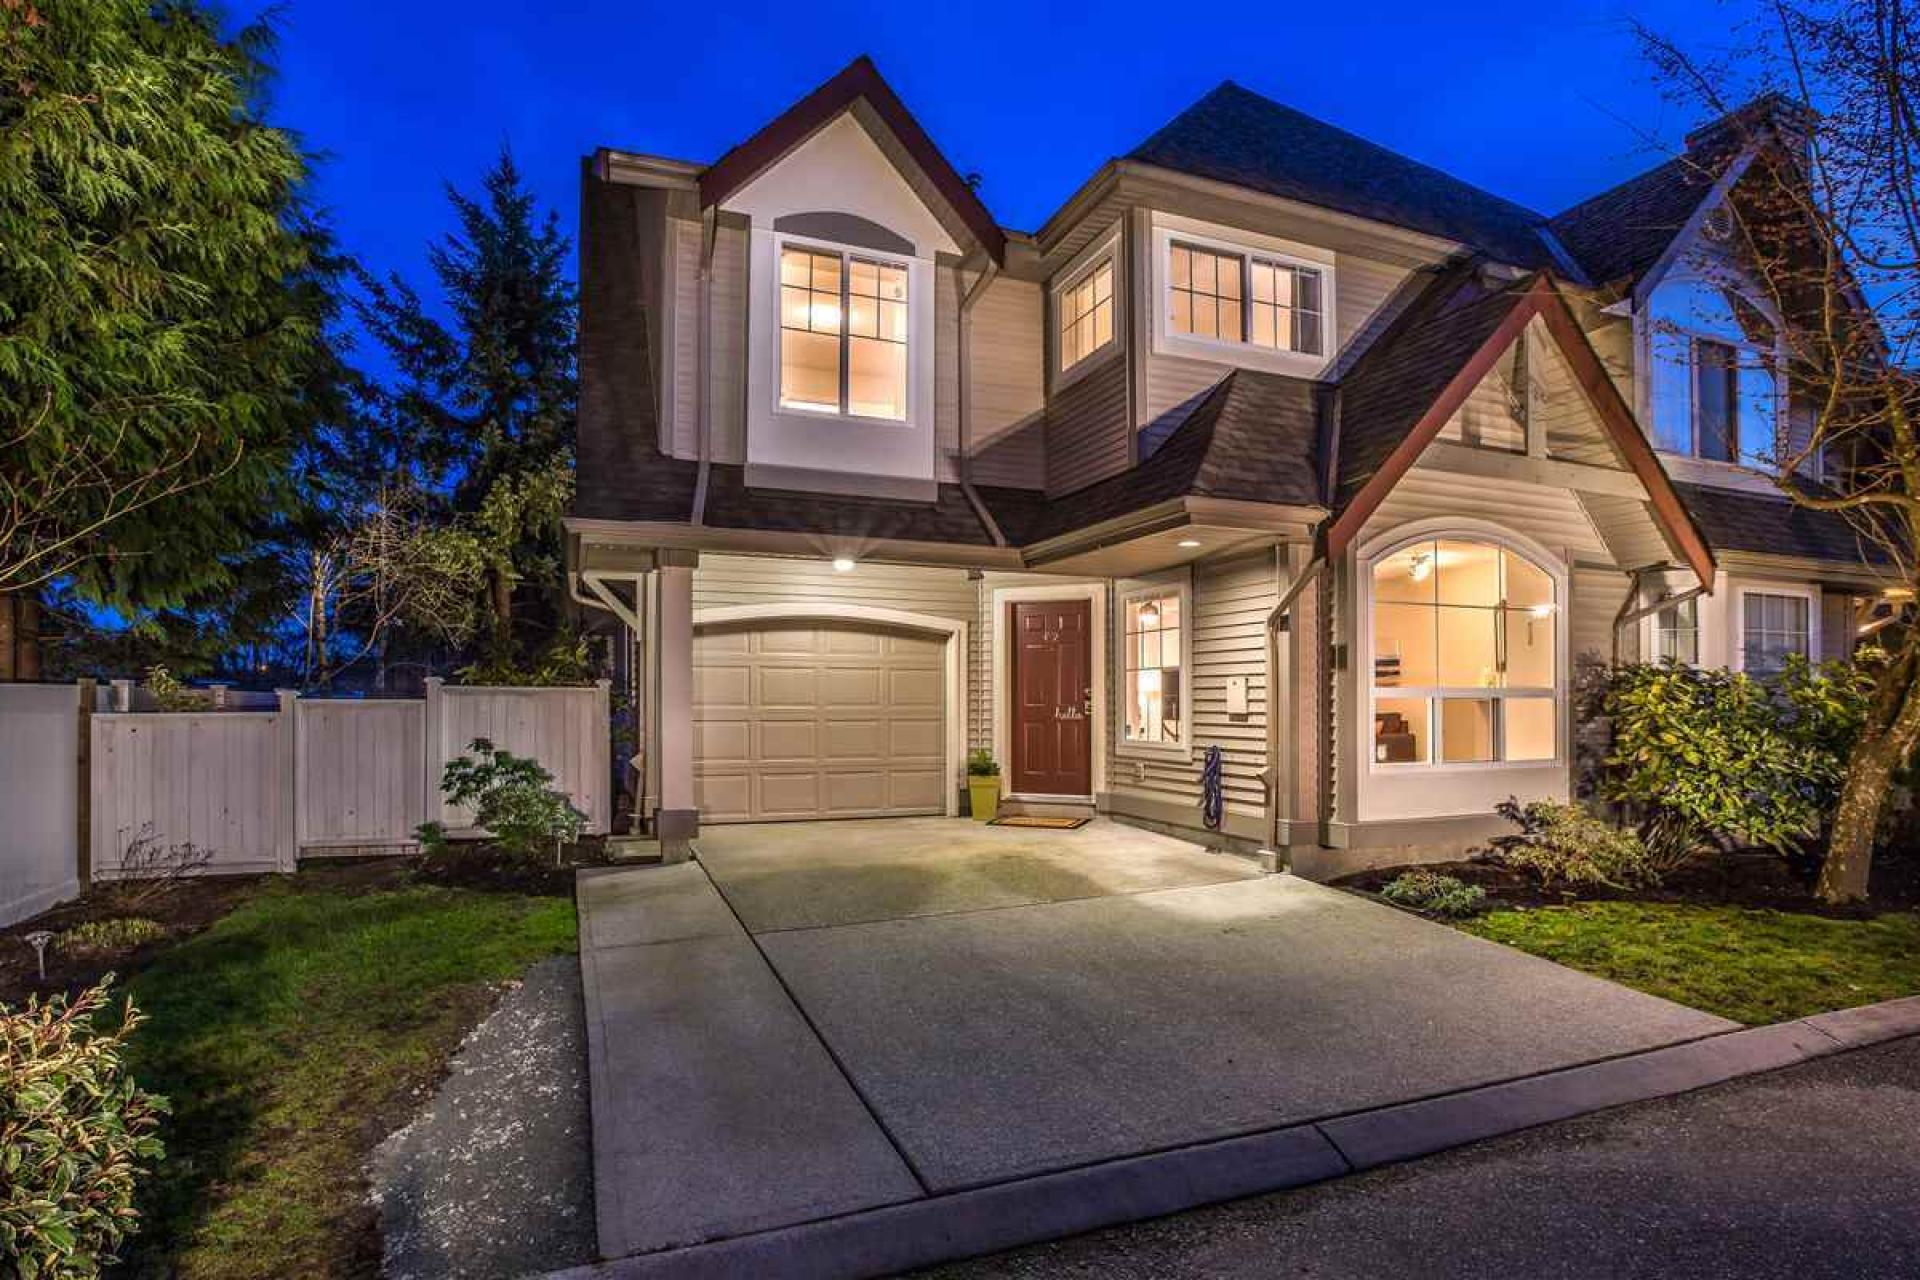 62 - 23085 118 Avenue, East Central, Maple Ridge